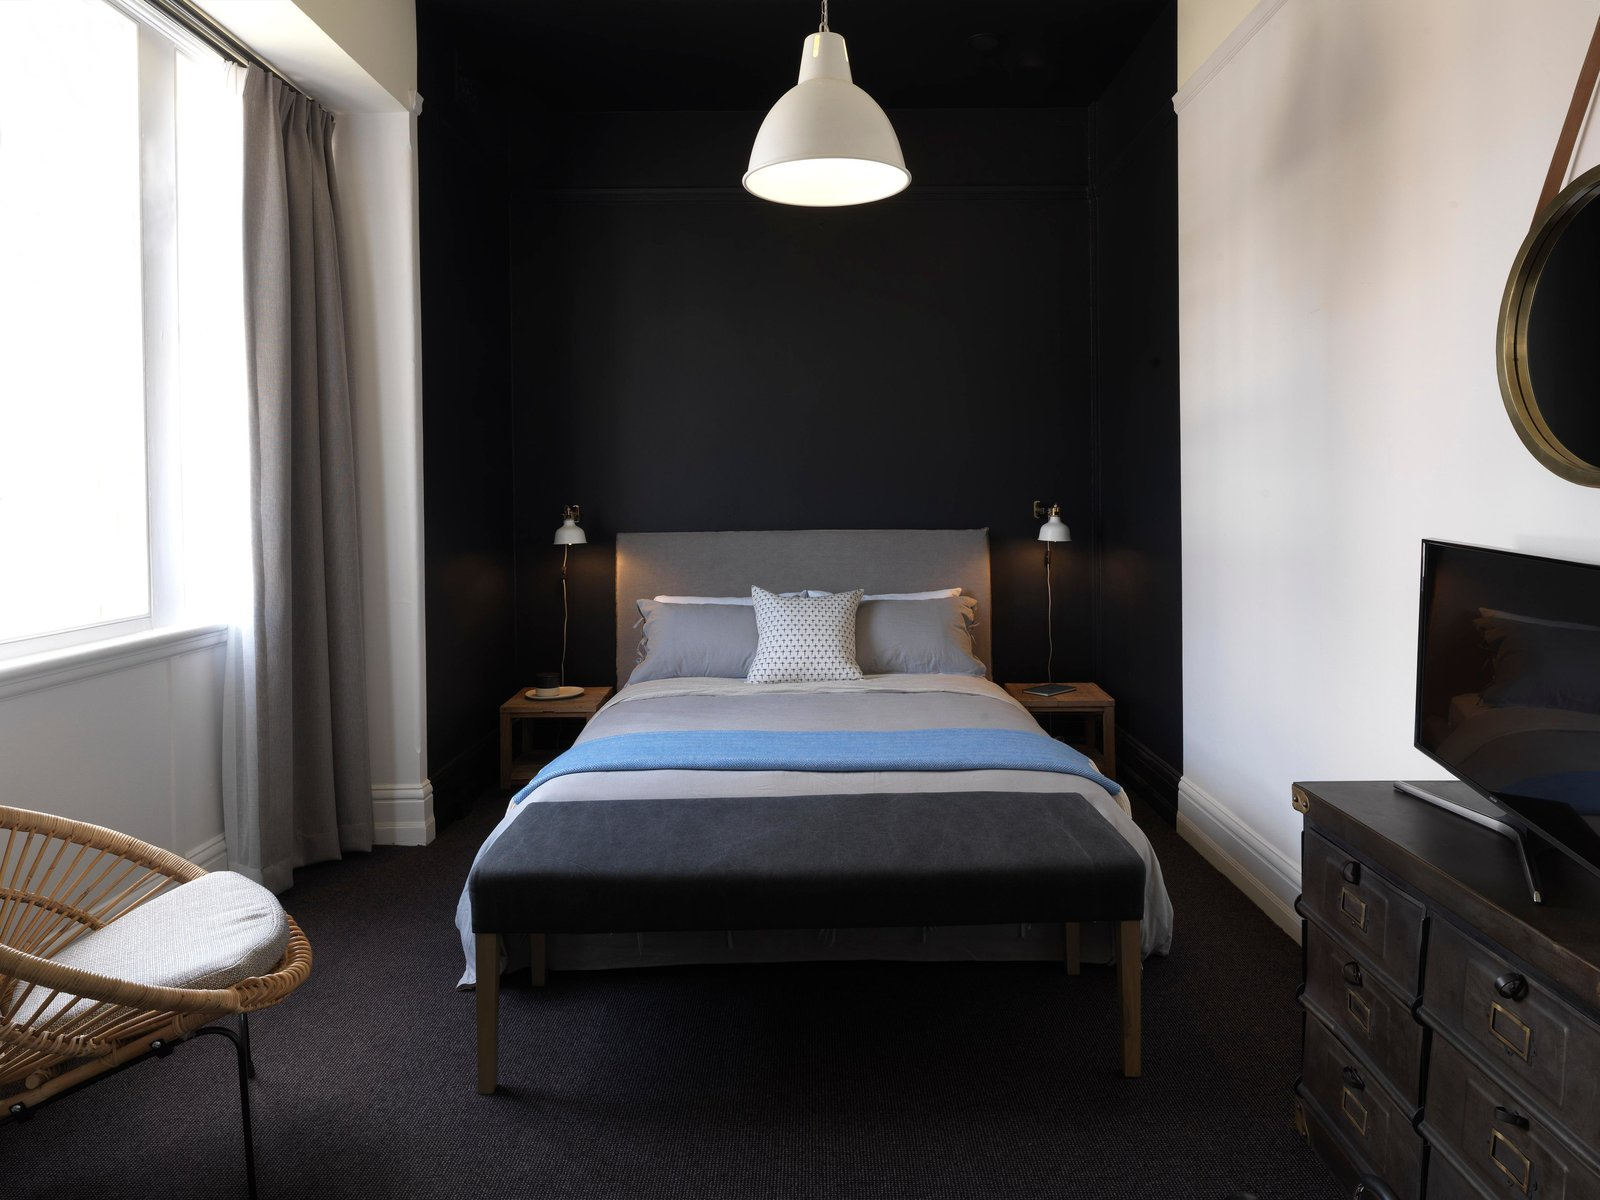 Bedroom, Bed, Chair, Carpet Floor, Wall Lighting, Pendant Lighting, and Night Stands  Hotel Palisade